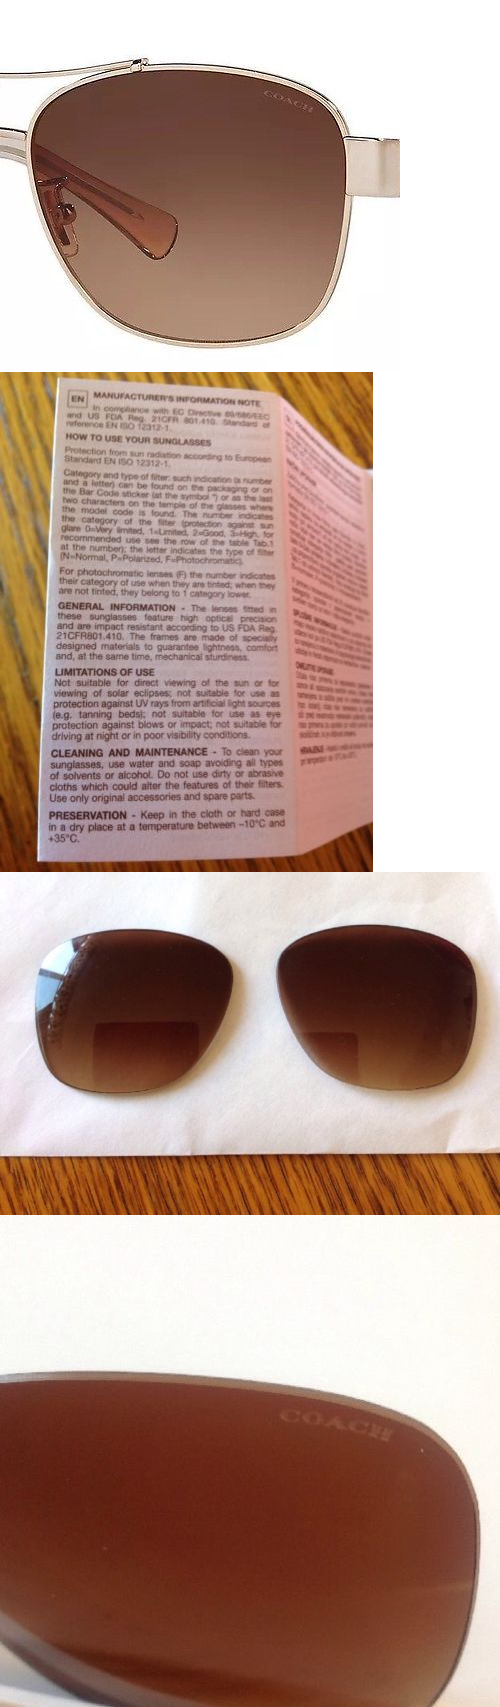 752a6a4a93 czech sunglass lens replacements 179196 lenses coach sunglasses hc7064 7064  hc70 lens color brown gradient no